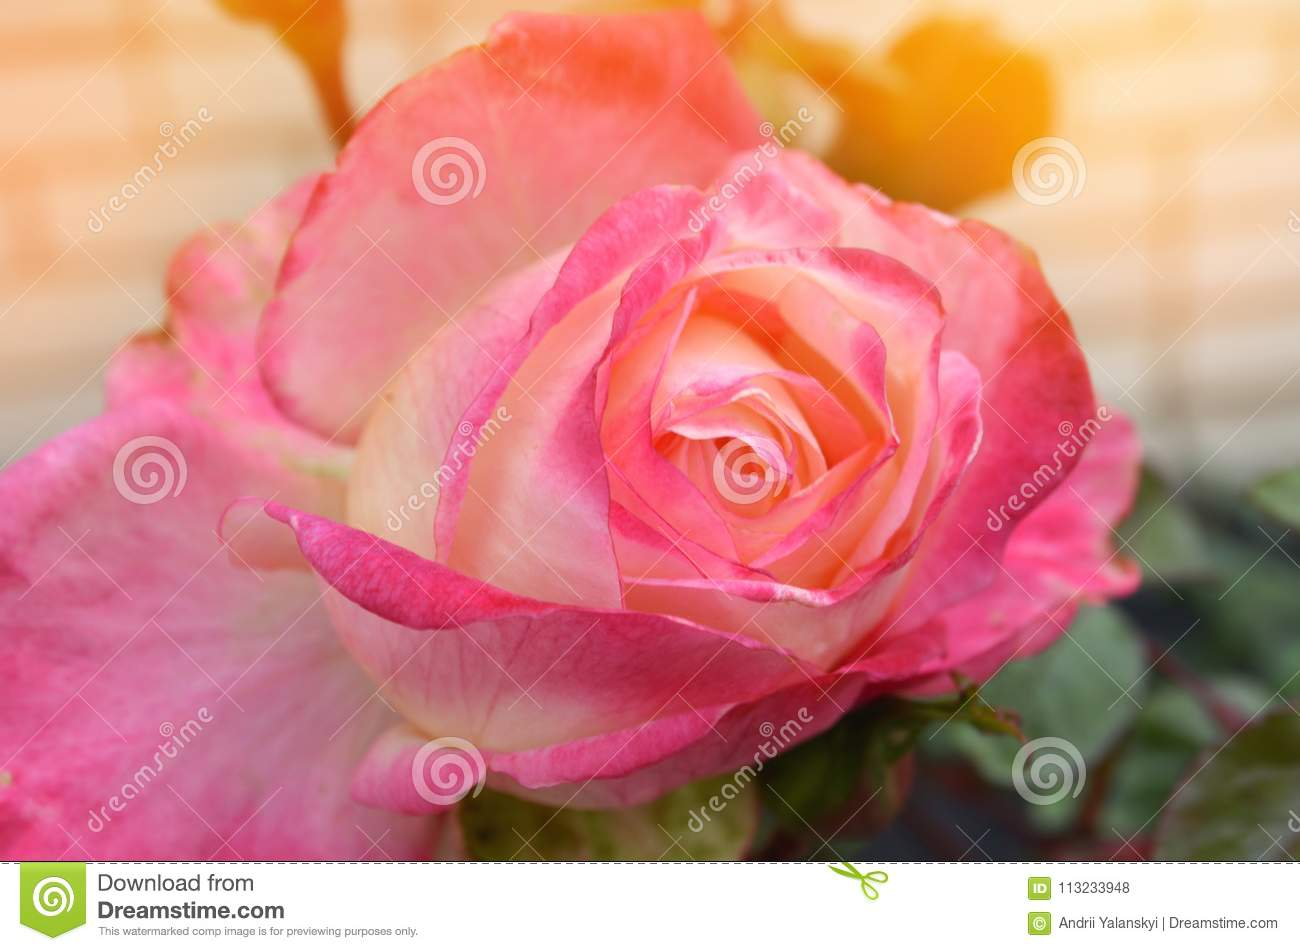 Beautiful Pink Rose In The Garden Nature Wallpaper Flower Stock